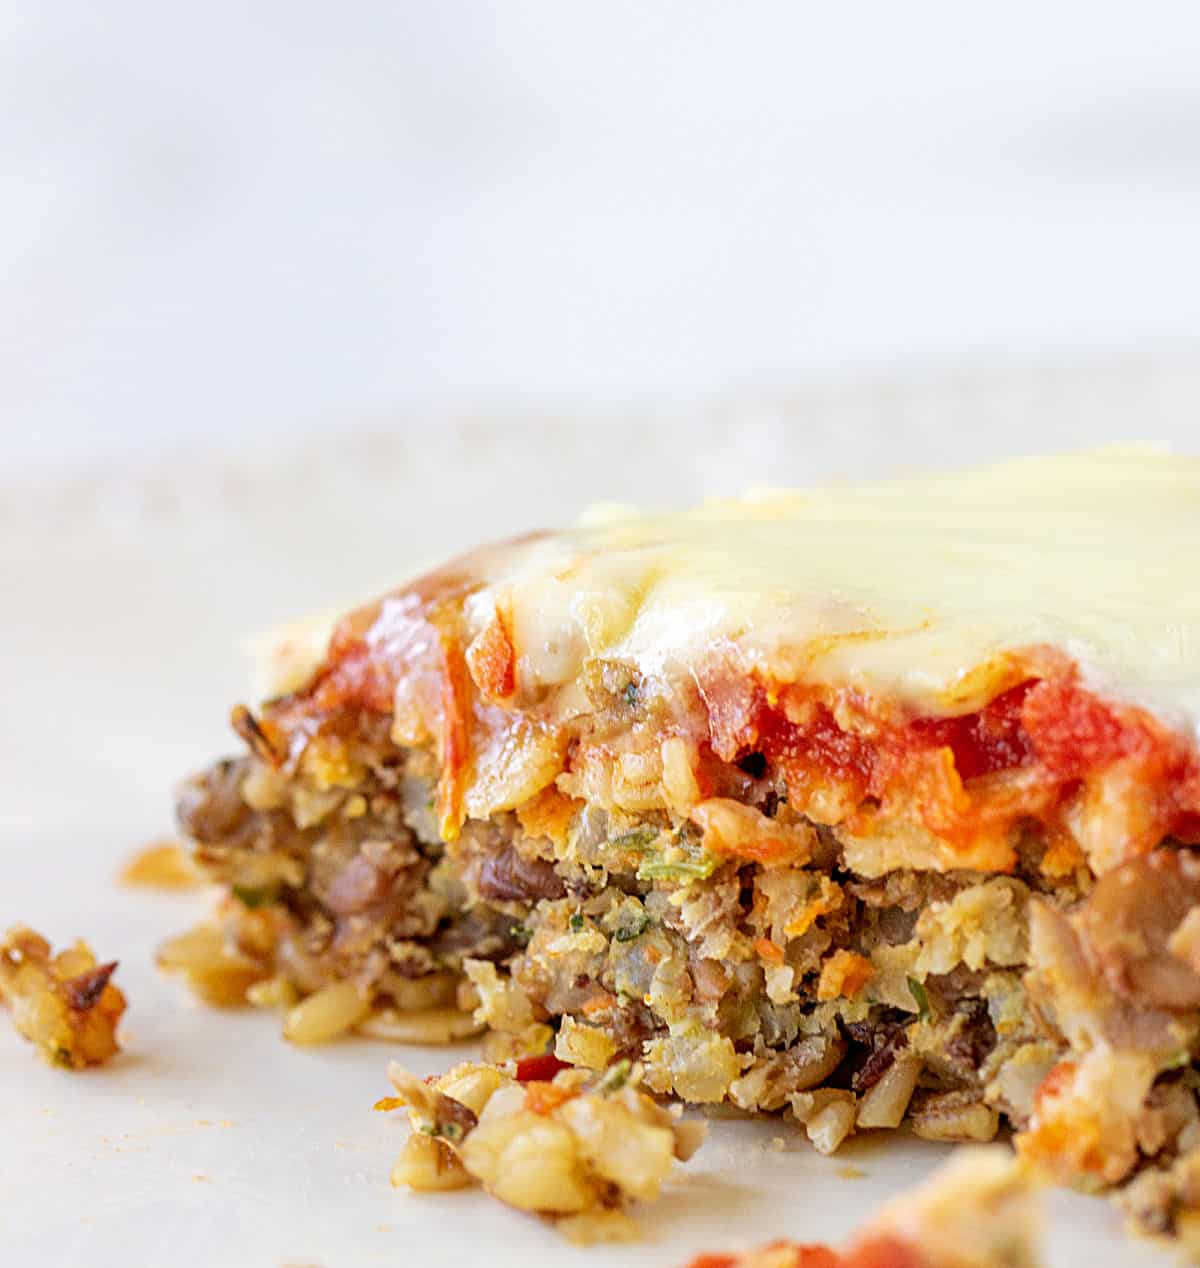 Eaten cheese lentil burger on parchment paper, white grey background